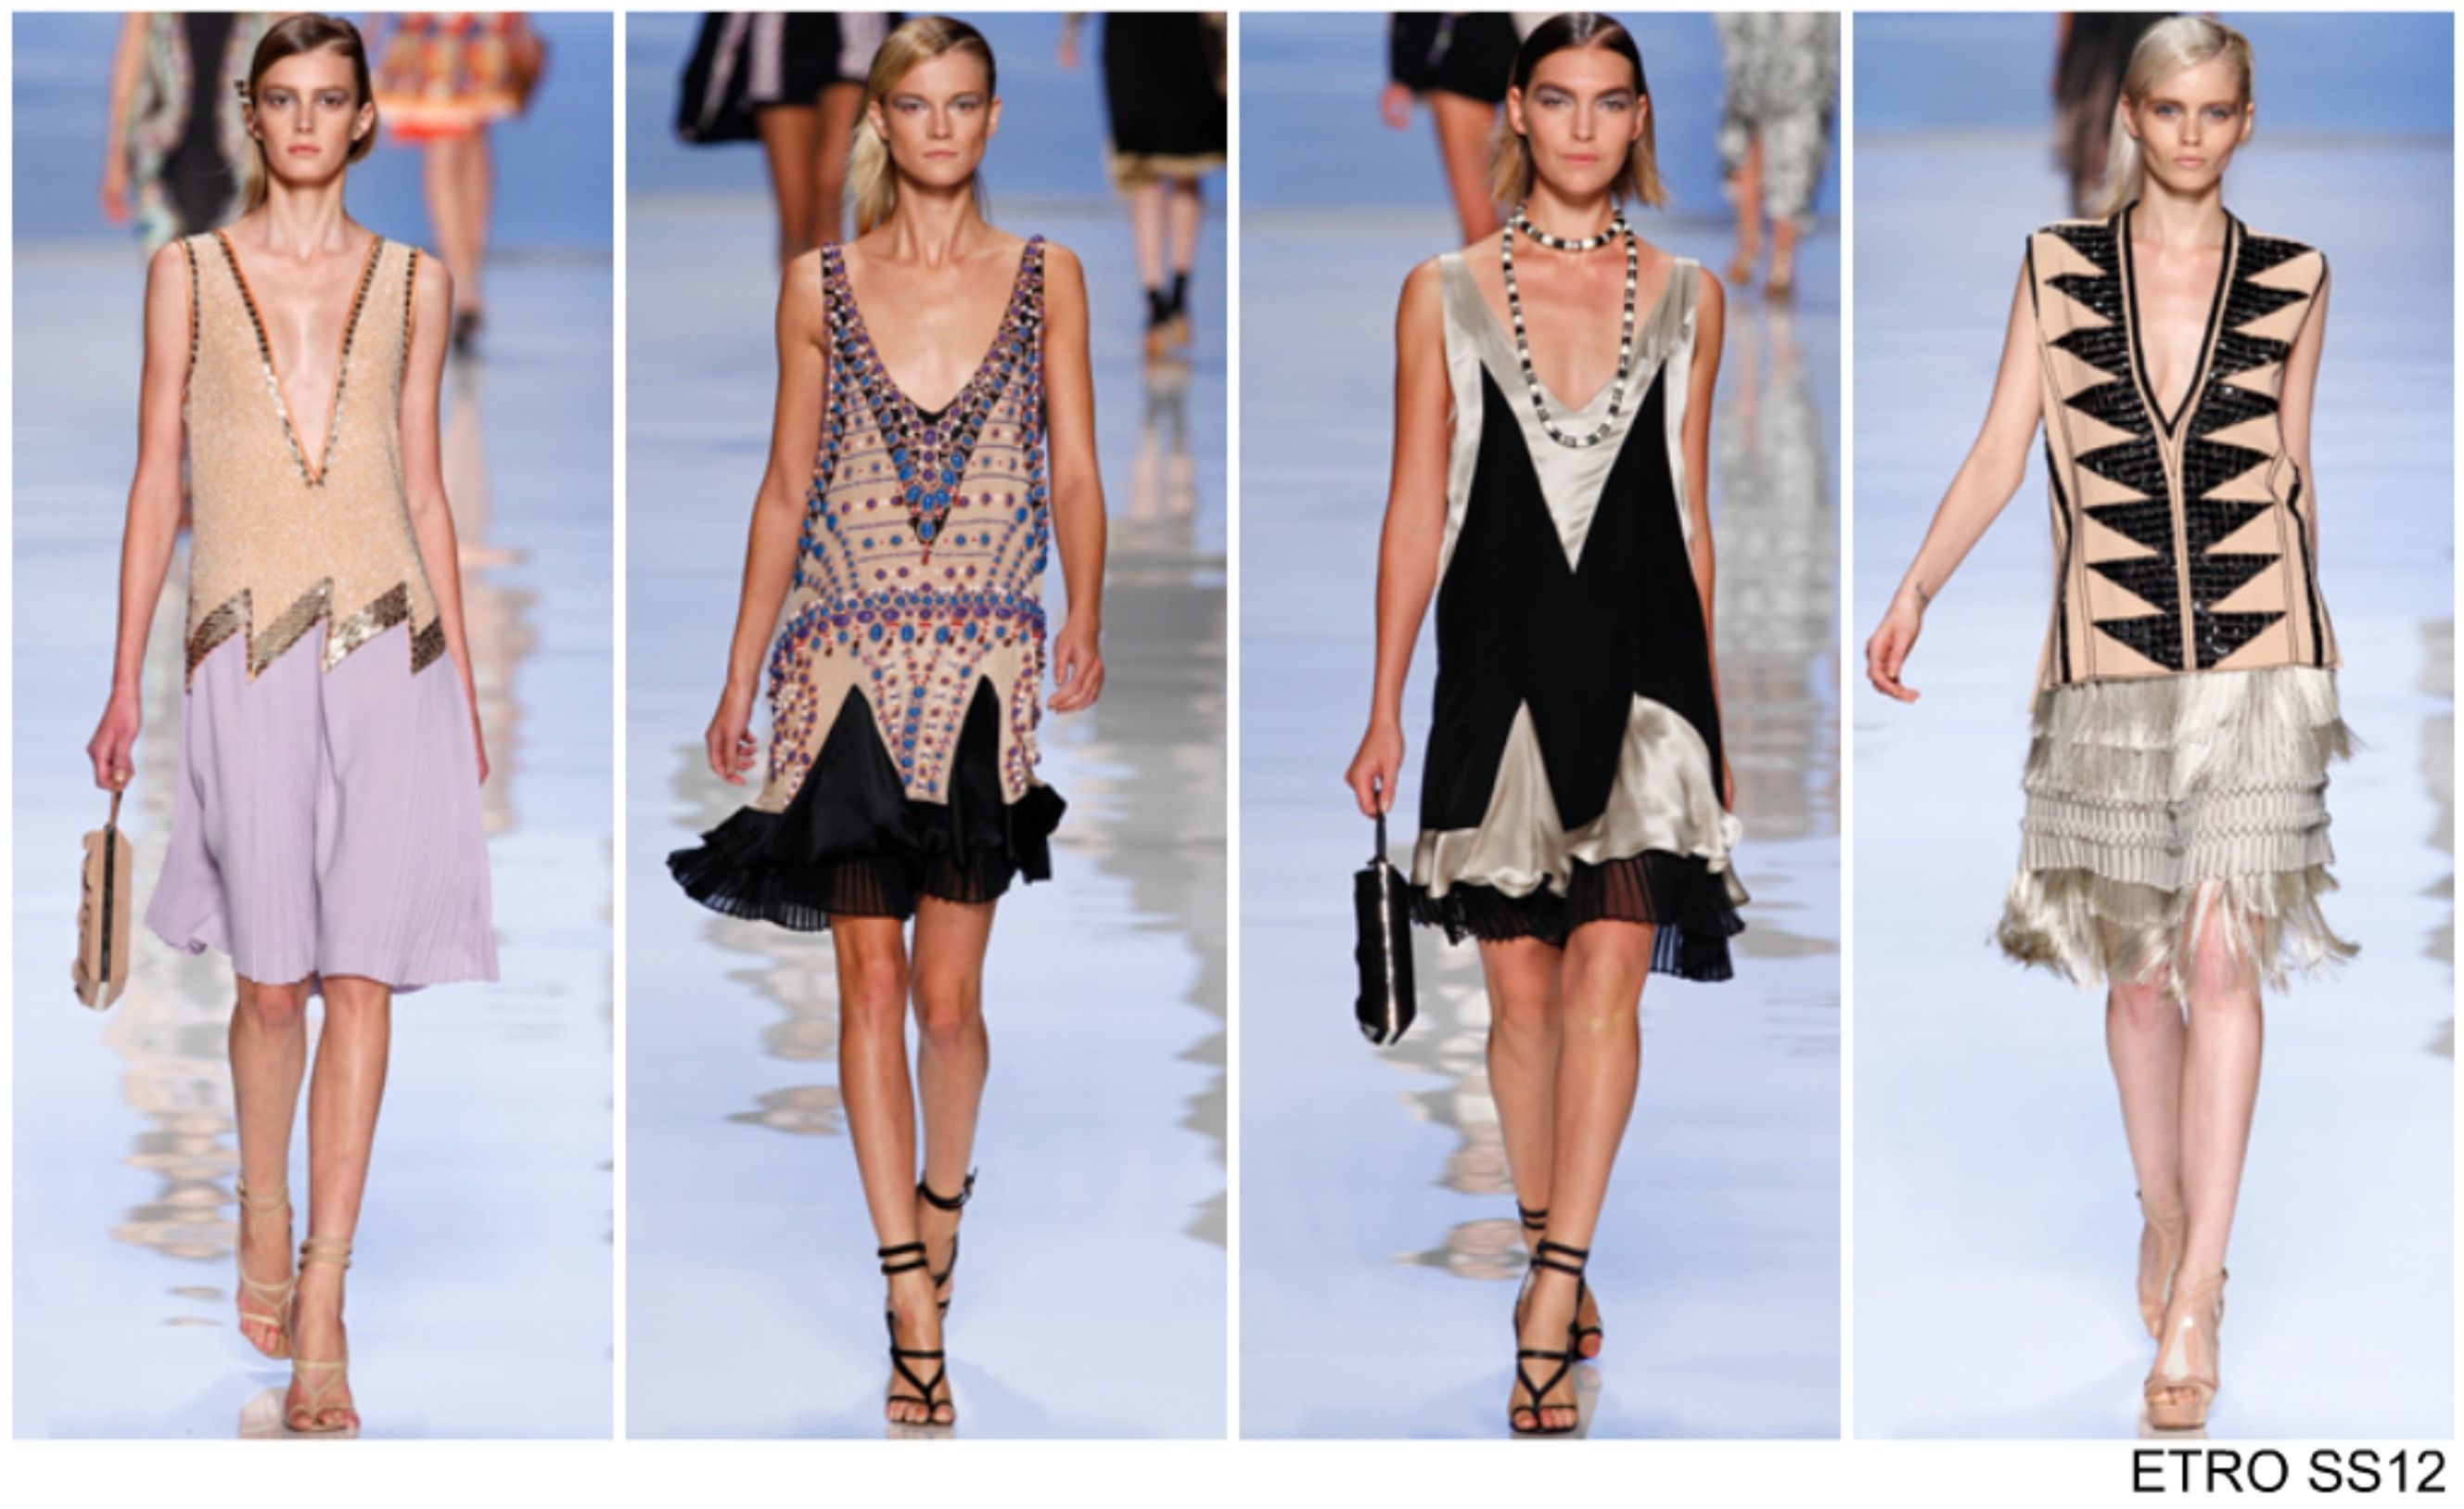 CATWALK] From the Spring Summer 2012 catwalks: The Great Gatsby | UK ...